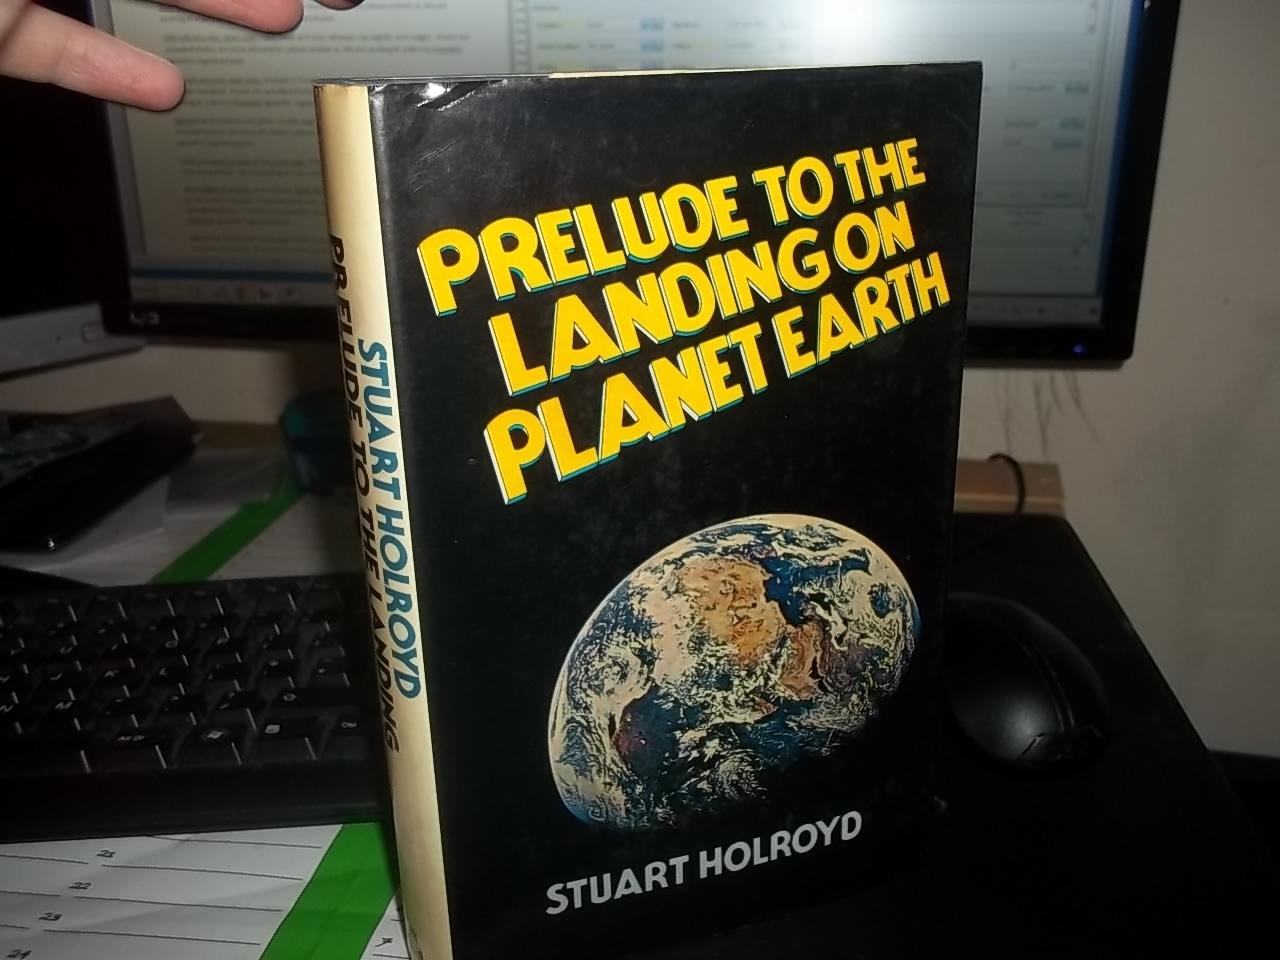 Prelude to the Landing on Planet Earth: Holroyd, Stuart